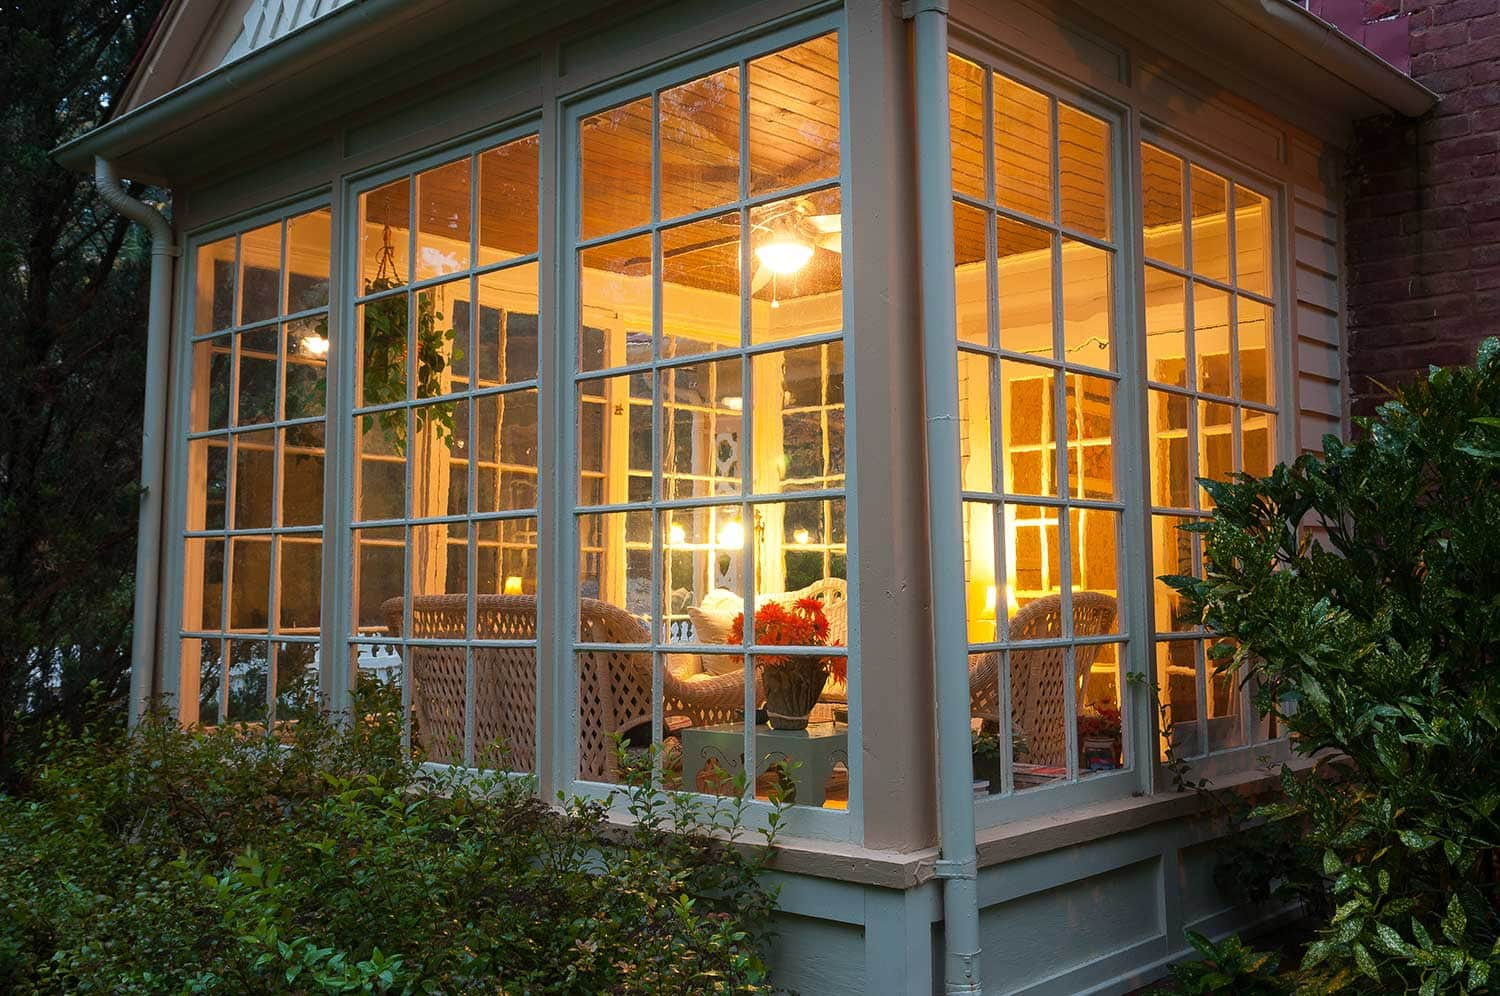 Evening photograph of a home sunroom